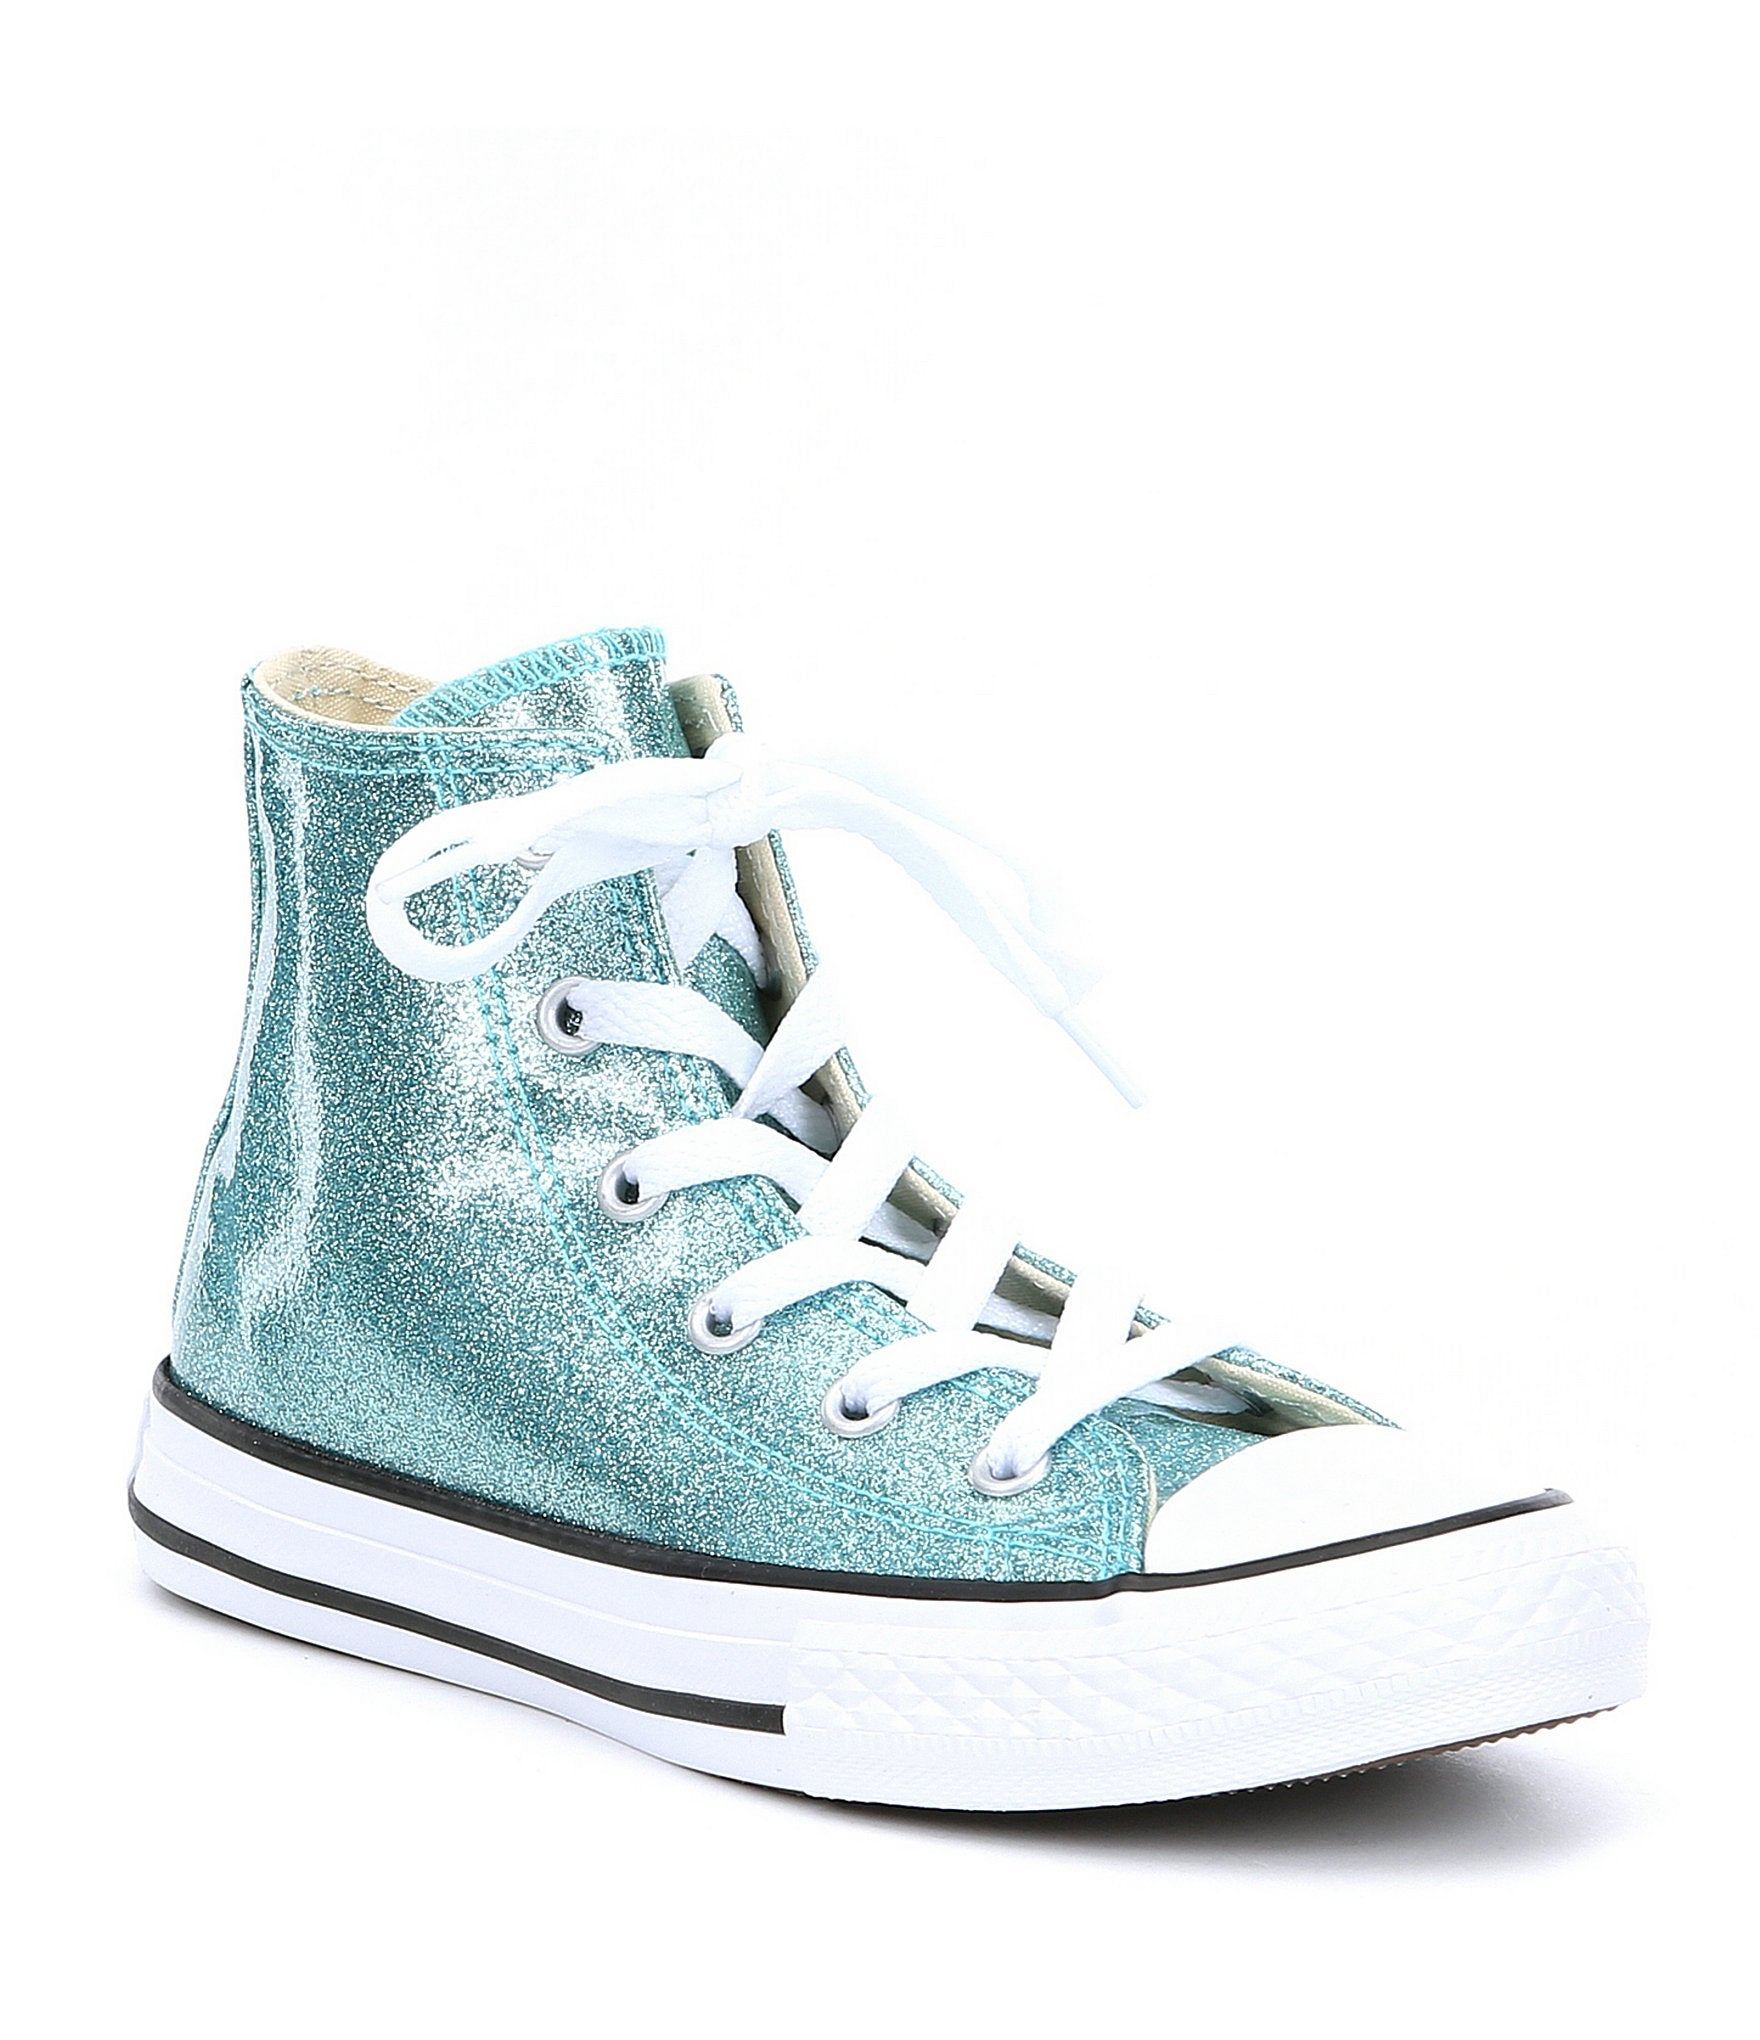 All Star metallic - AQUA (27-35)